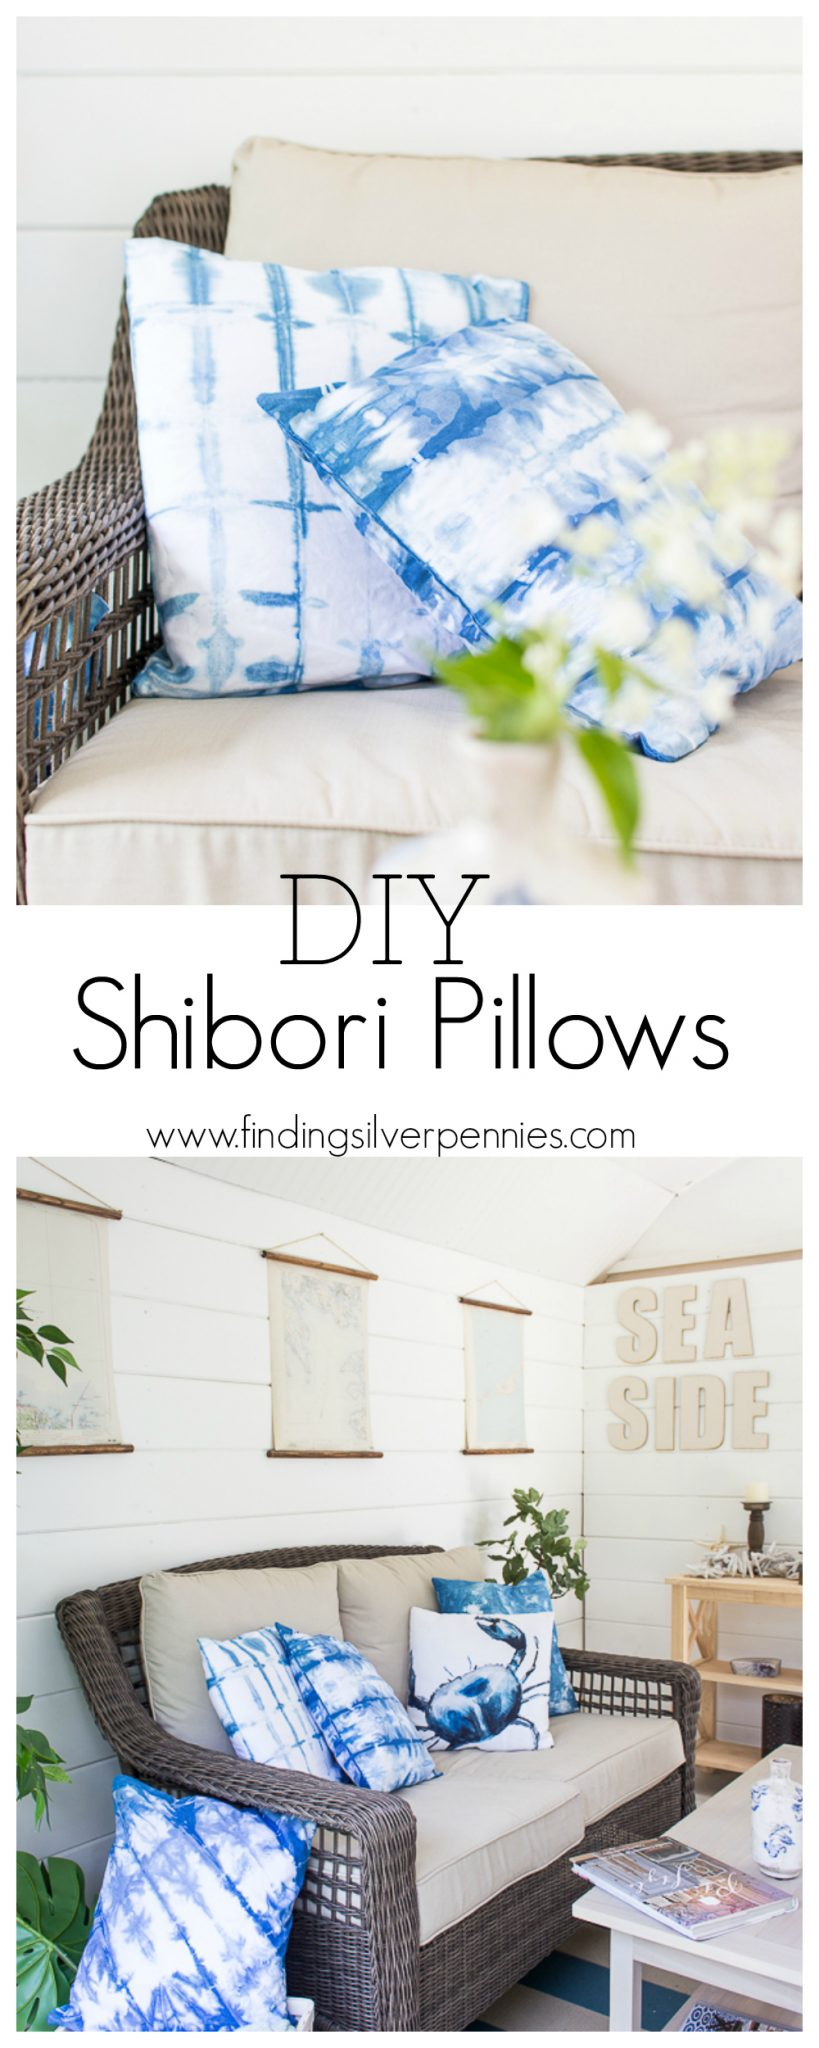 DIY Shibori Pillows - how to get this look easily for your own home.